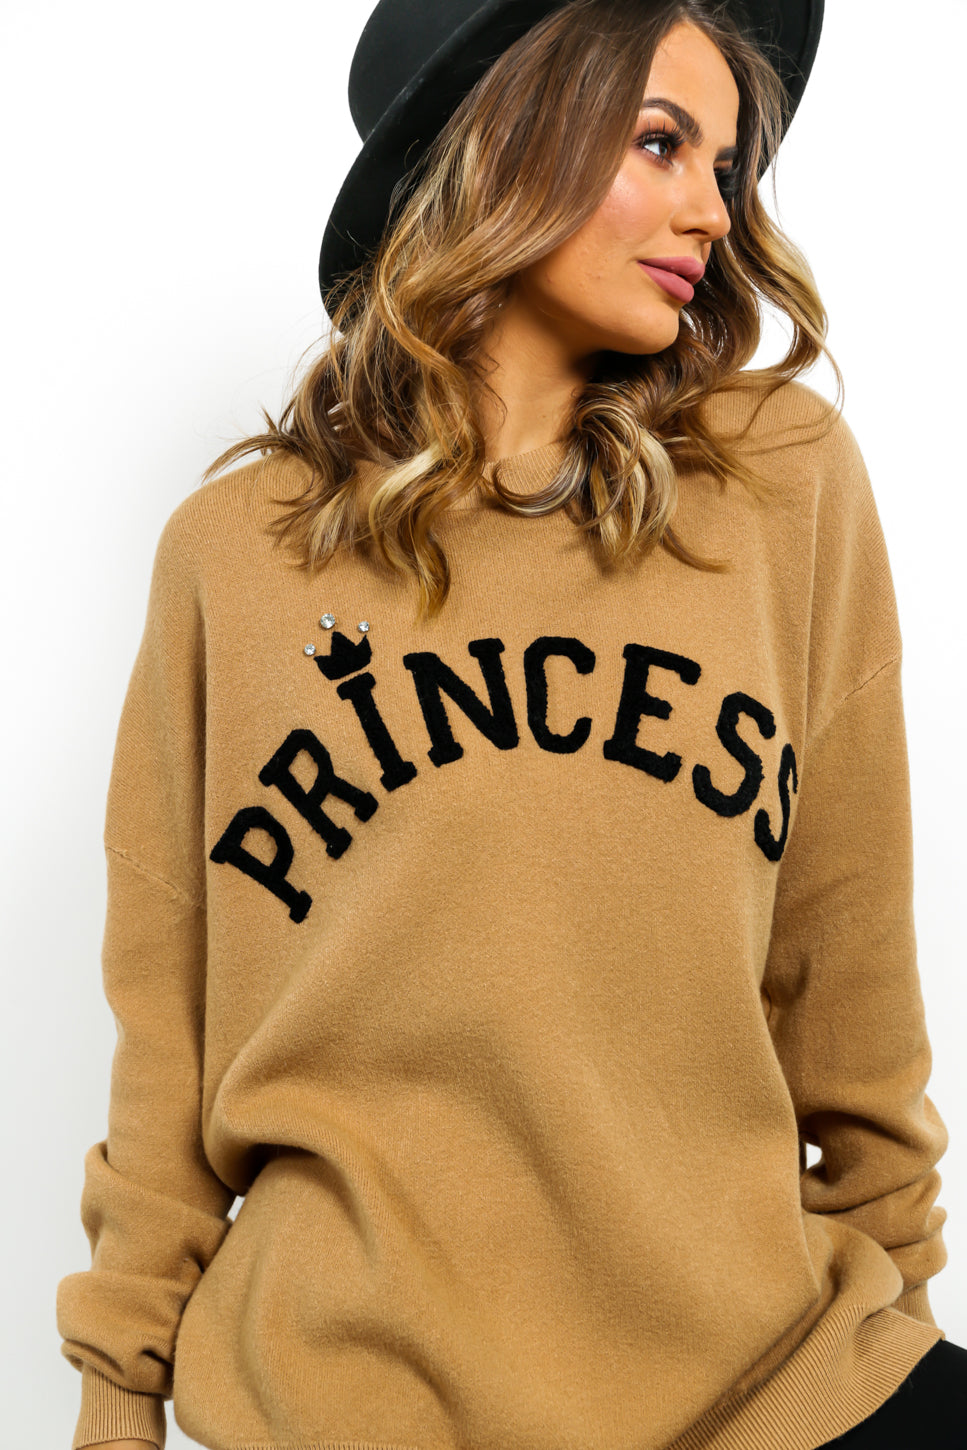 https://cdn.shopify.com/s/files/1/0062/6661/7925/files/product-video-princess-jumper_in_camel_black.mp4?6445